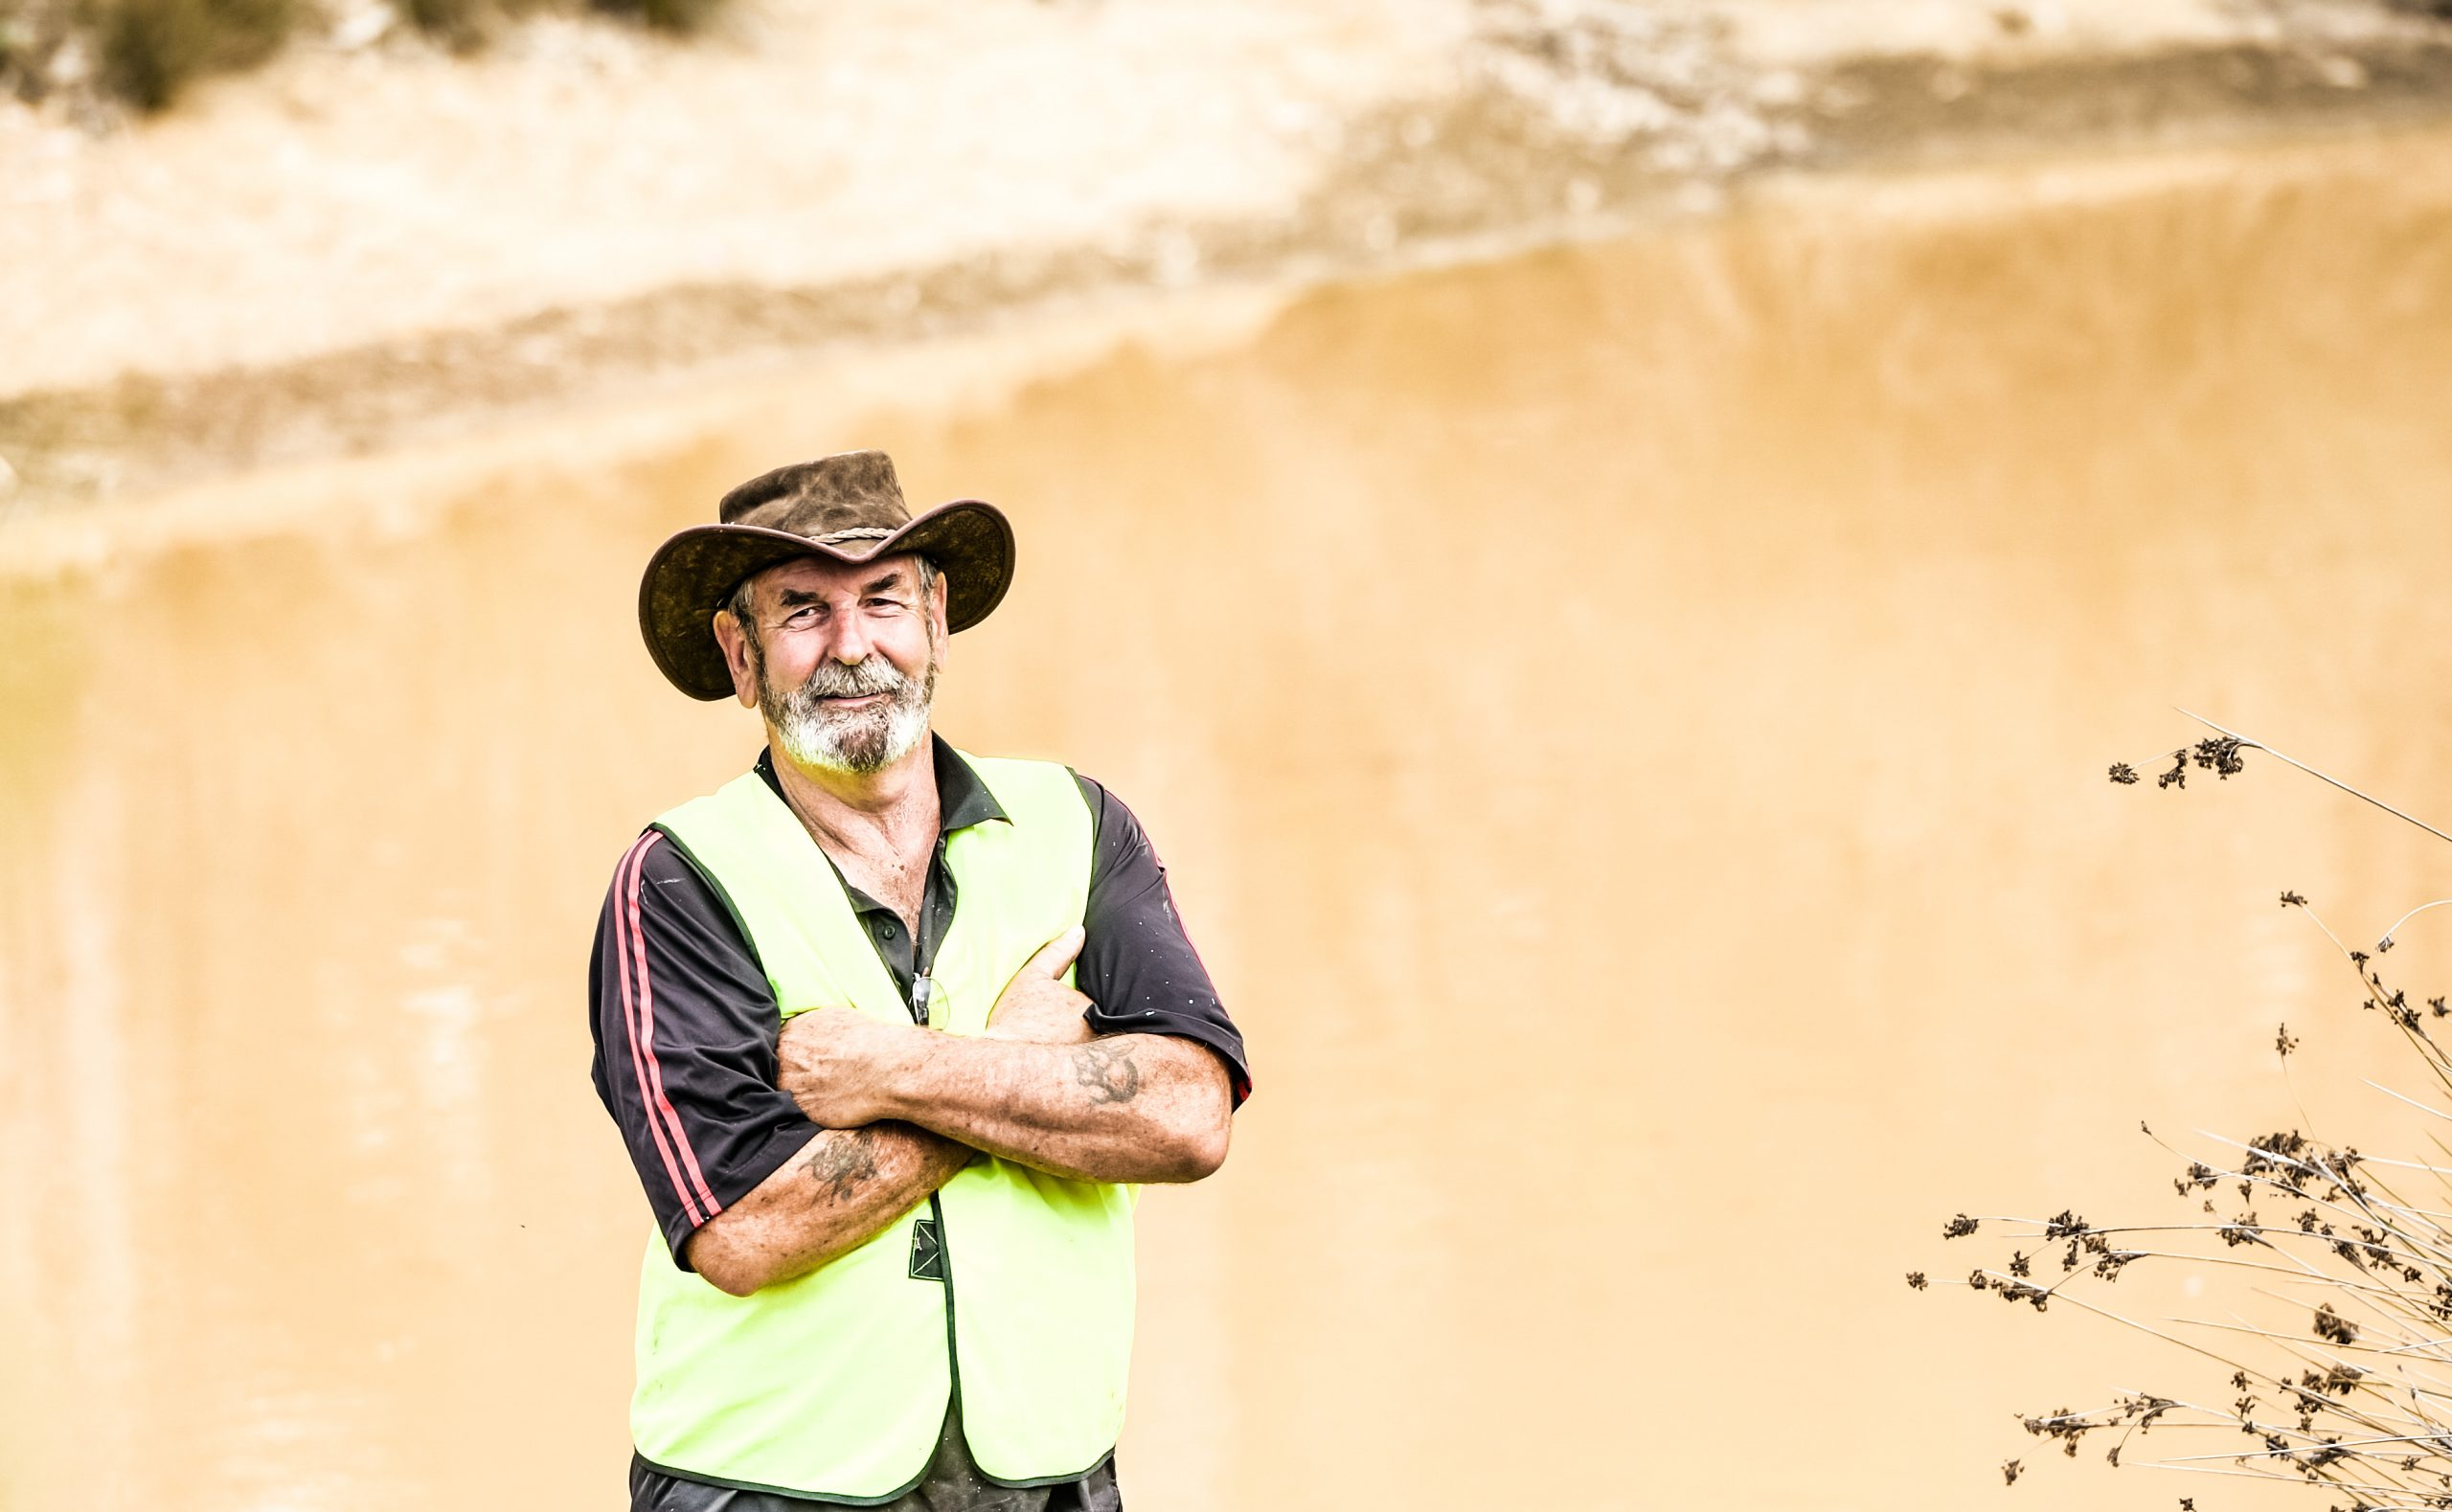 Typical Australian Farmer by his farm dam, holding water for the harsh summers. Dealing with droughts and bush fire season.